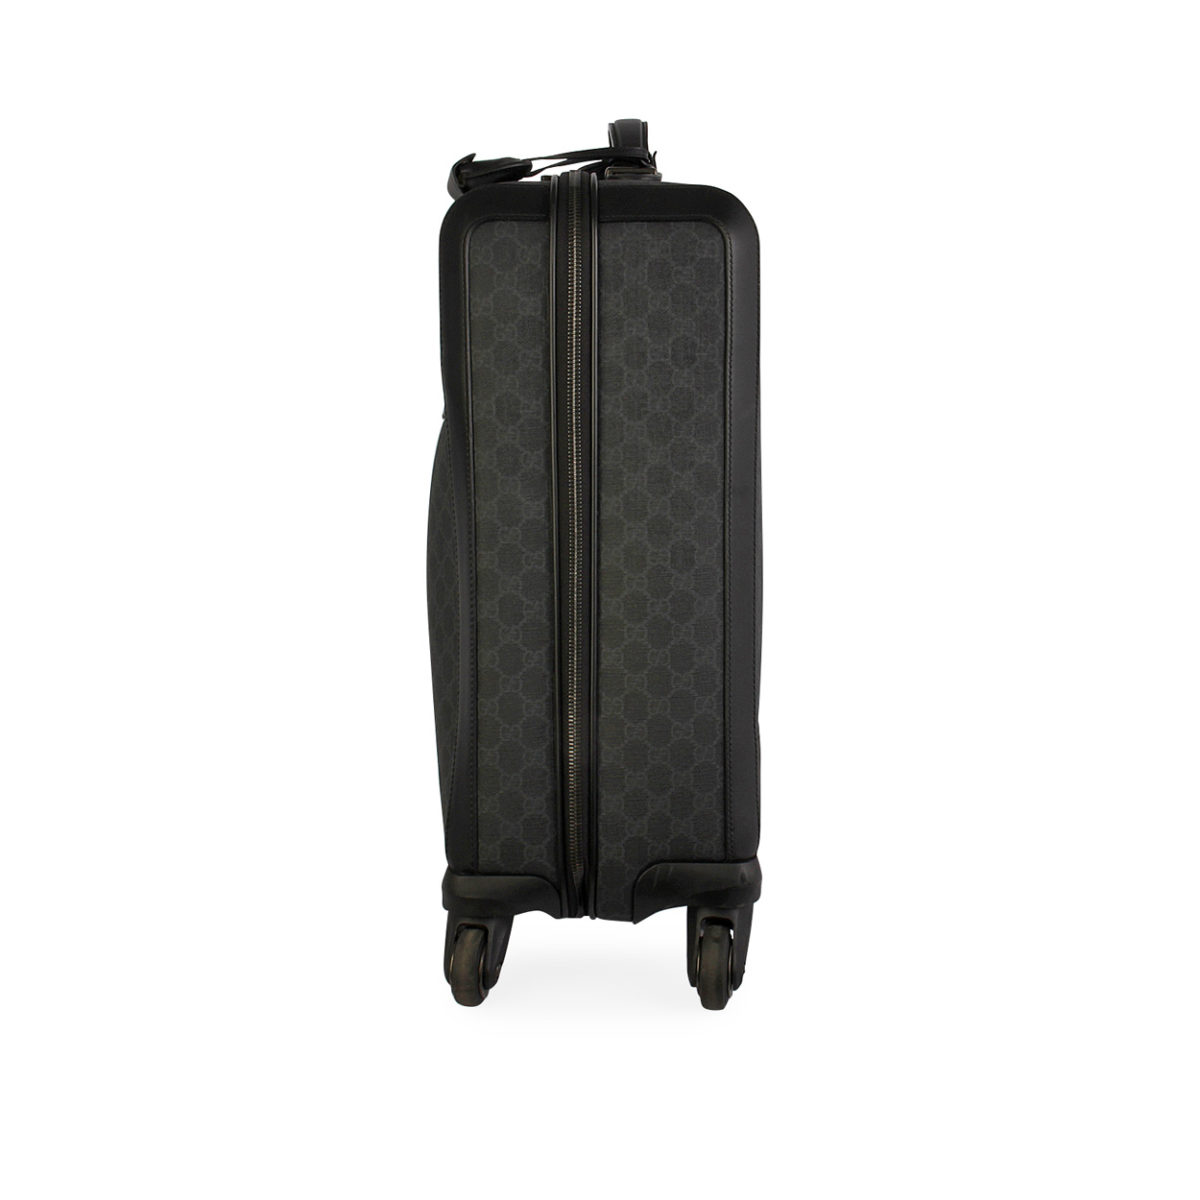 012e8a410ce409 GUCCI GG Supreme Four Wheel Carry On Suitcase Black | Luxity